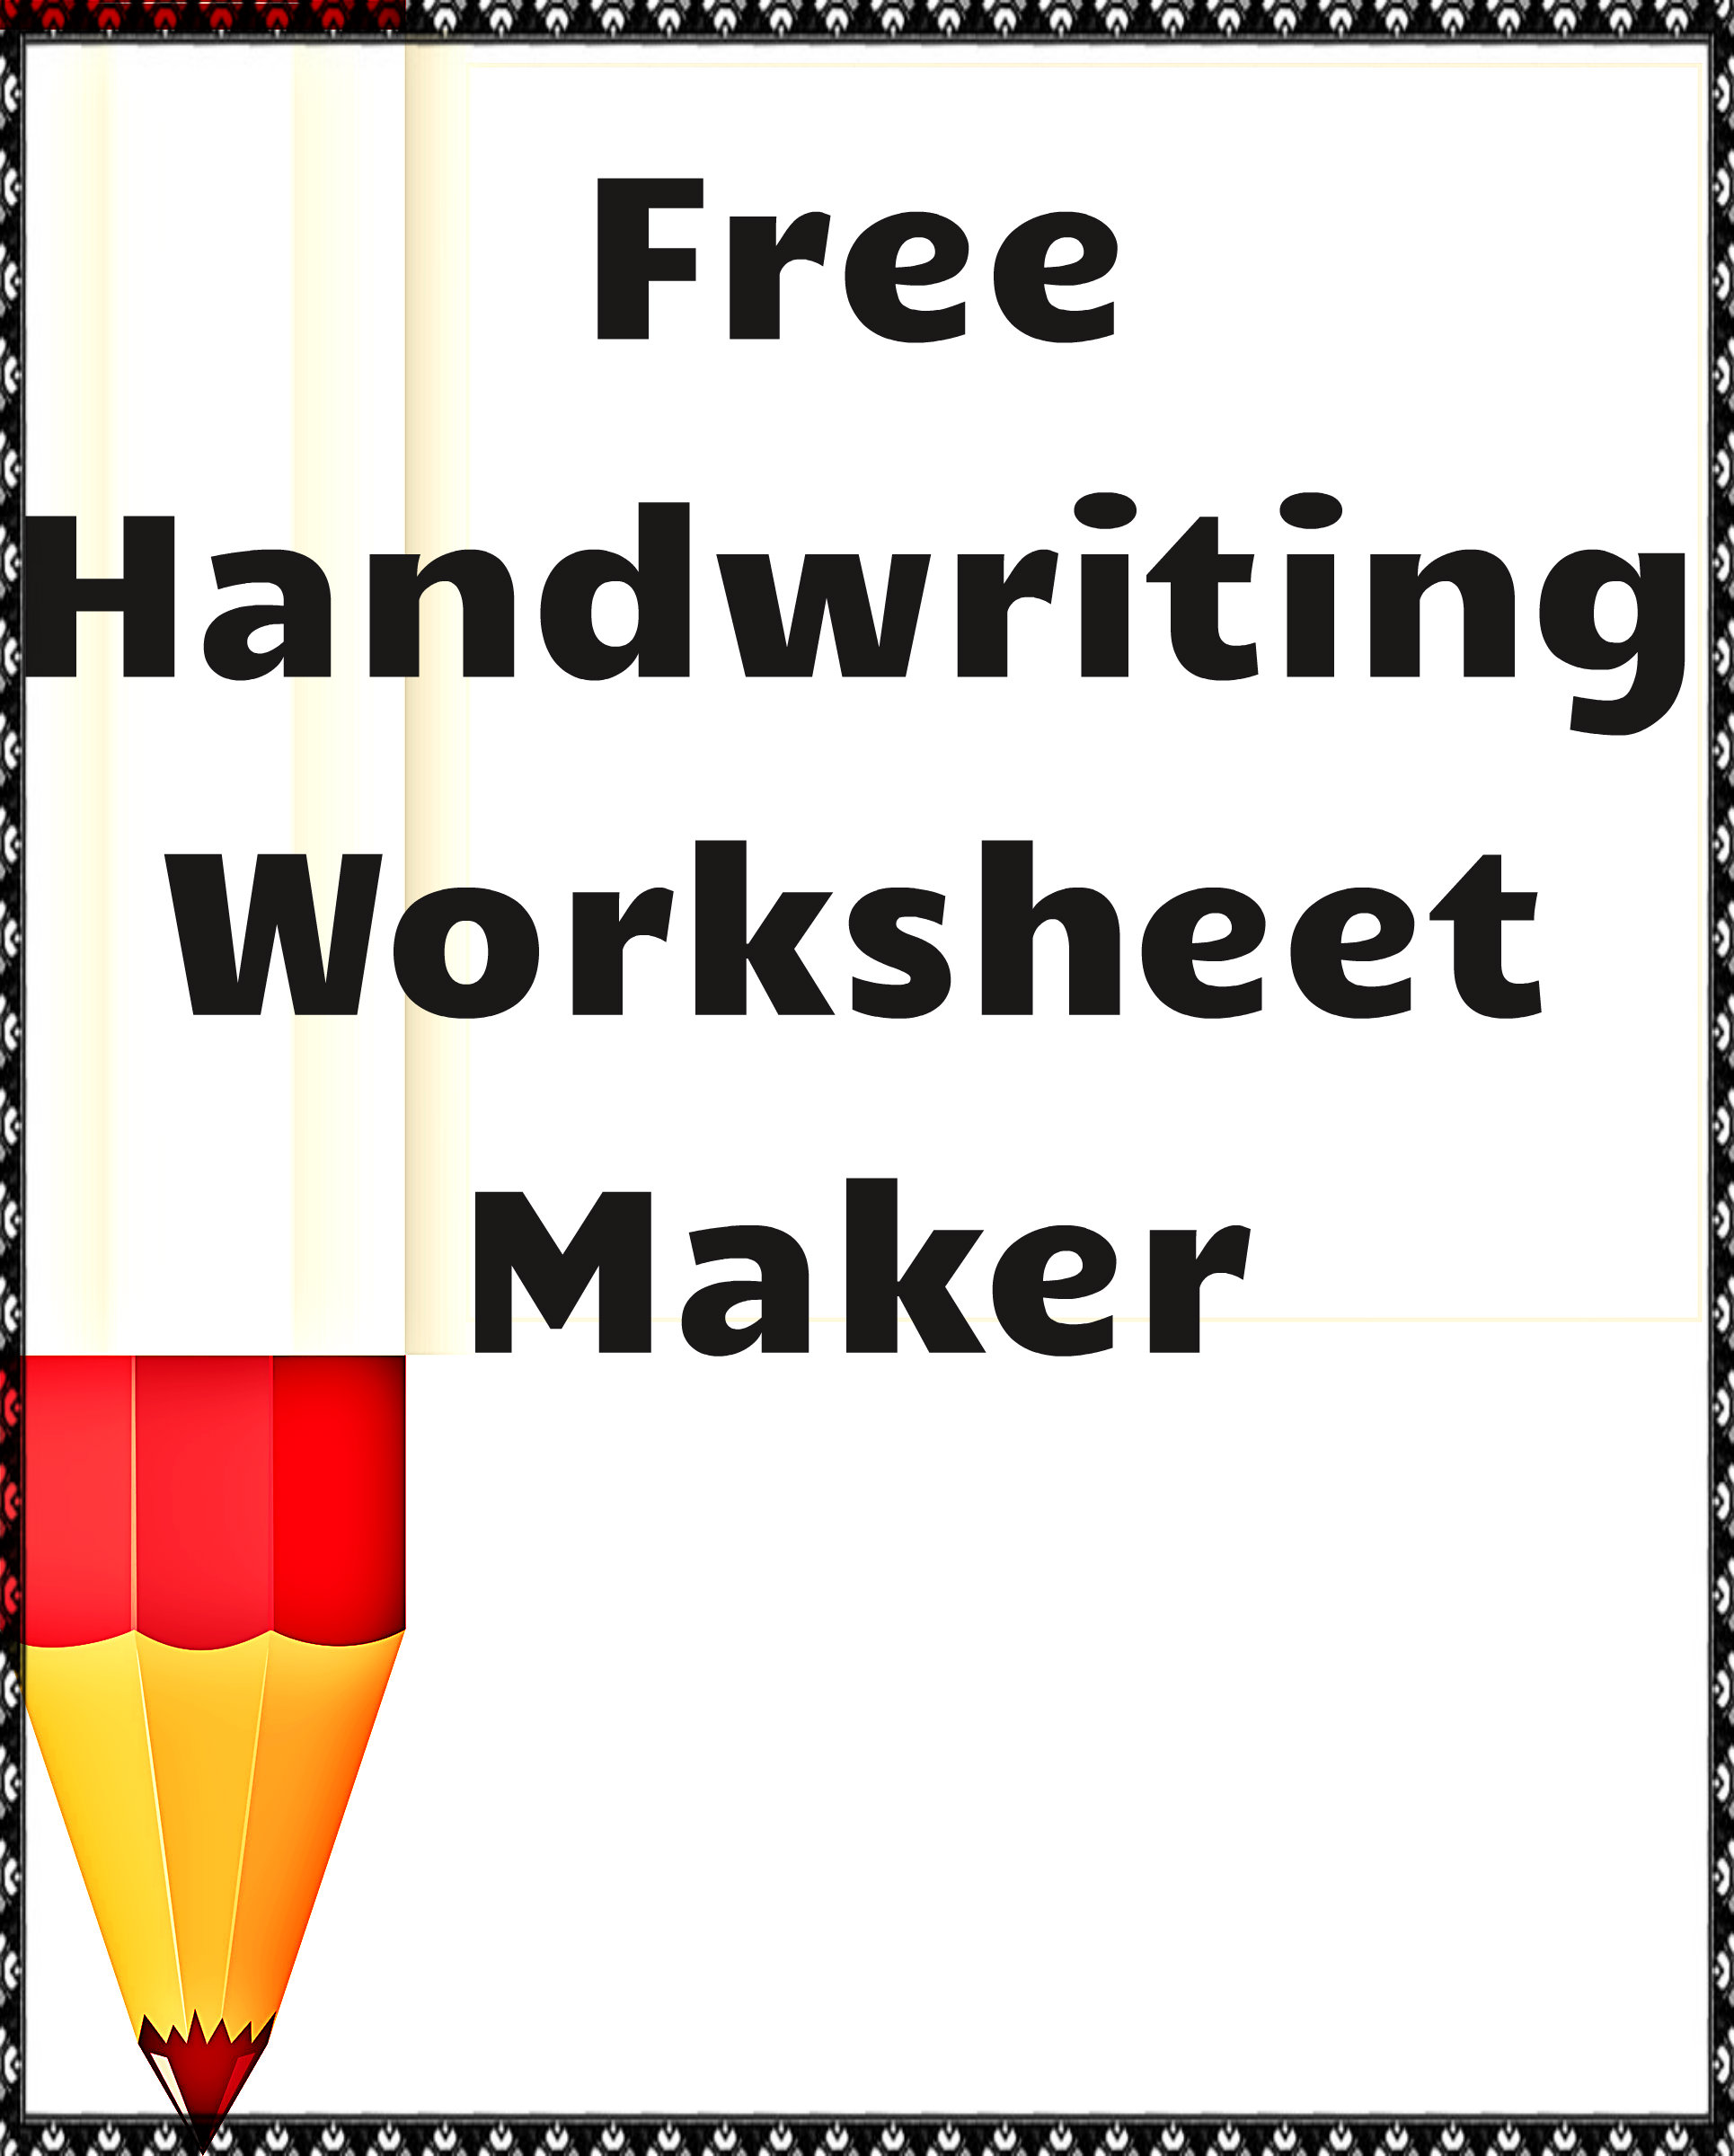 Printables Kindergarten Handwriting Worksheet Maker handwriting worksheet maker free classroom tools readyteacher com maker